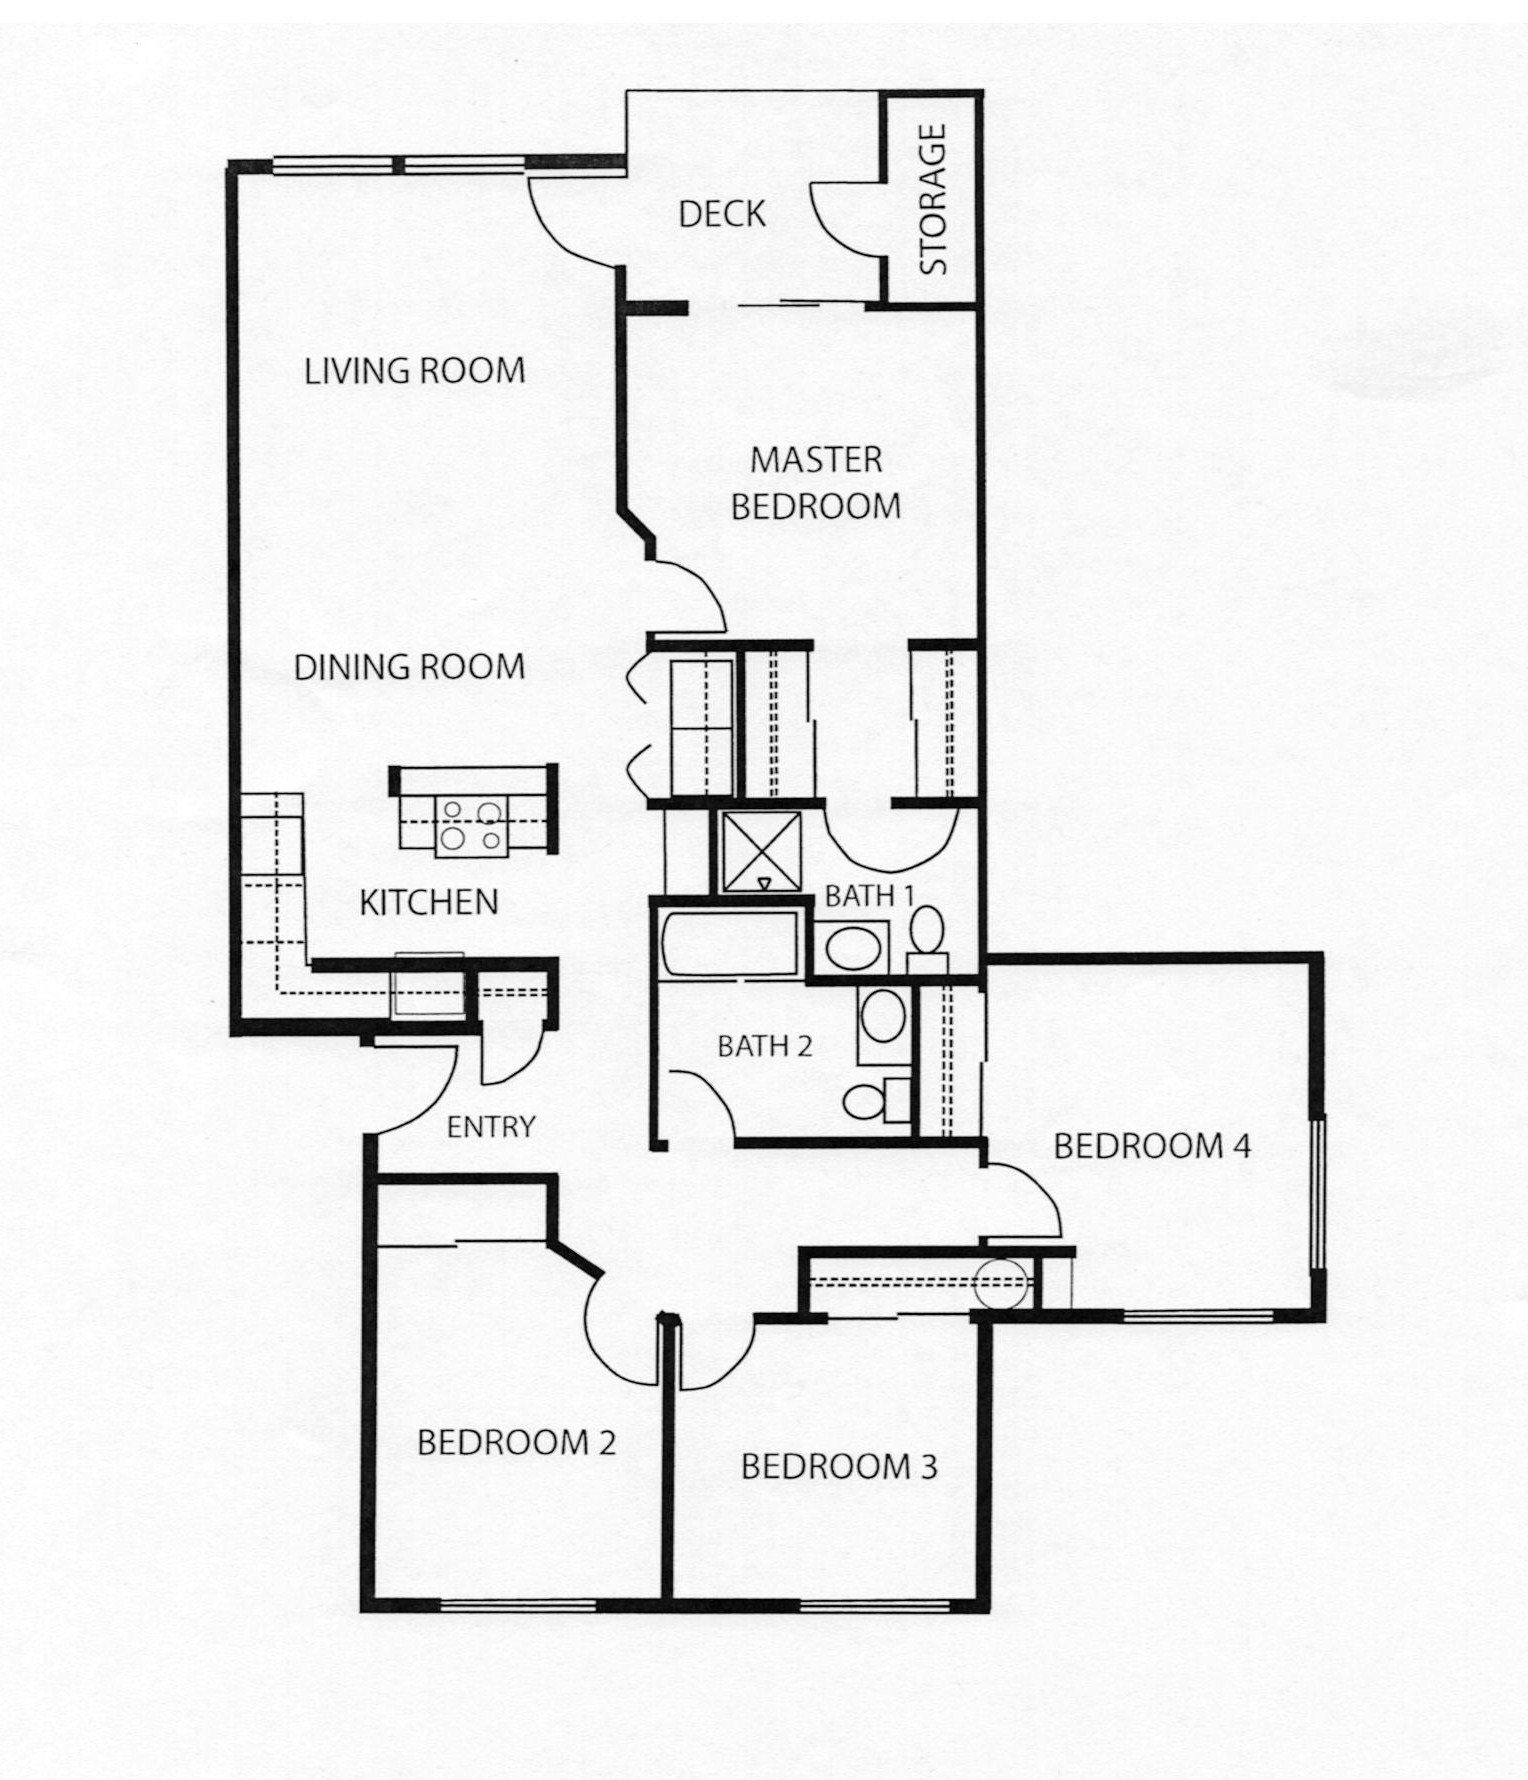 4 bedroom floor plans pricing floor plans 7400